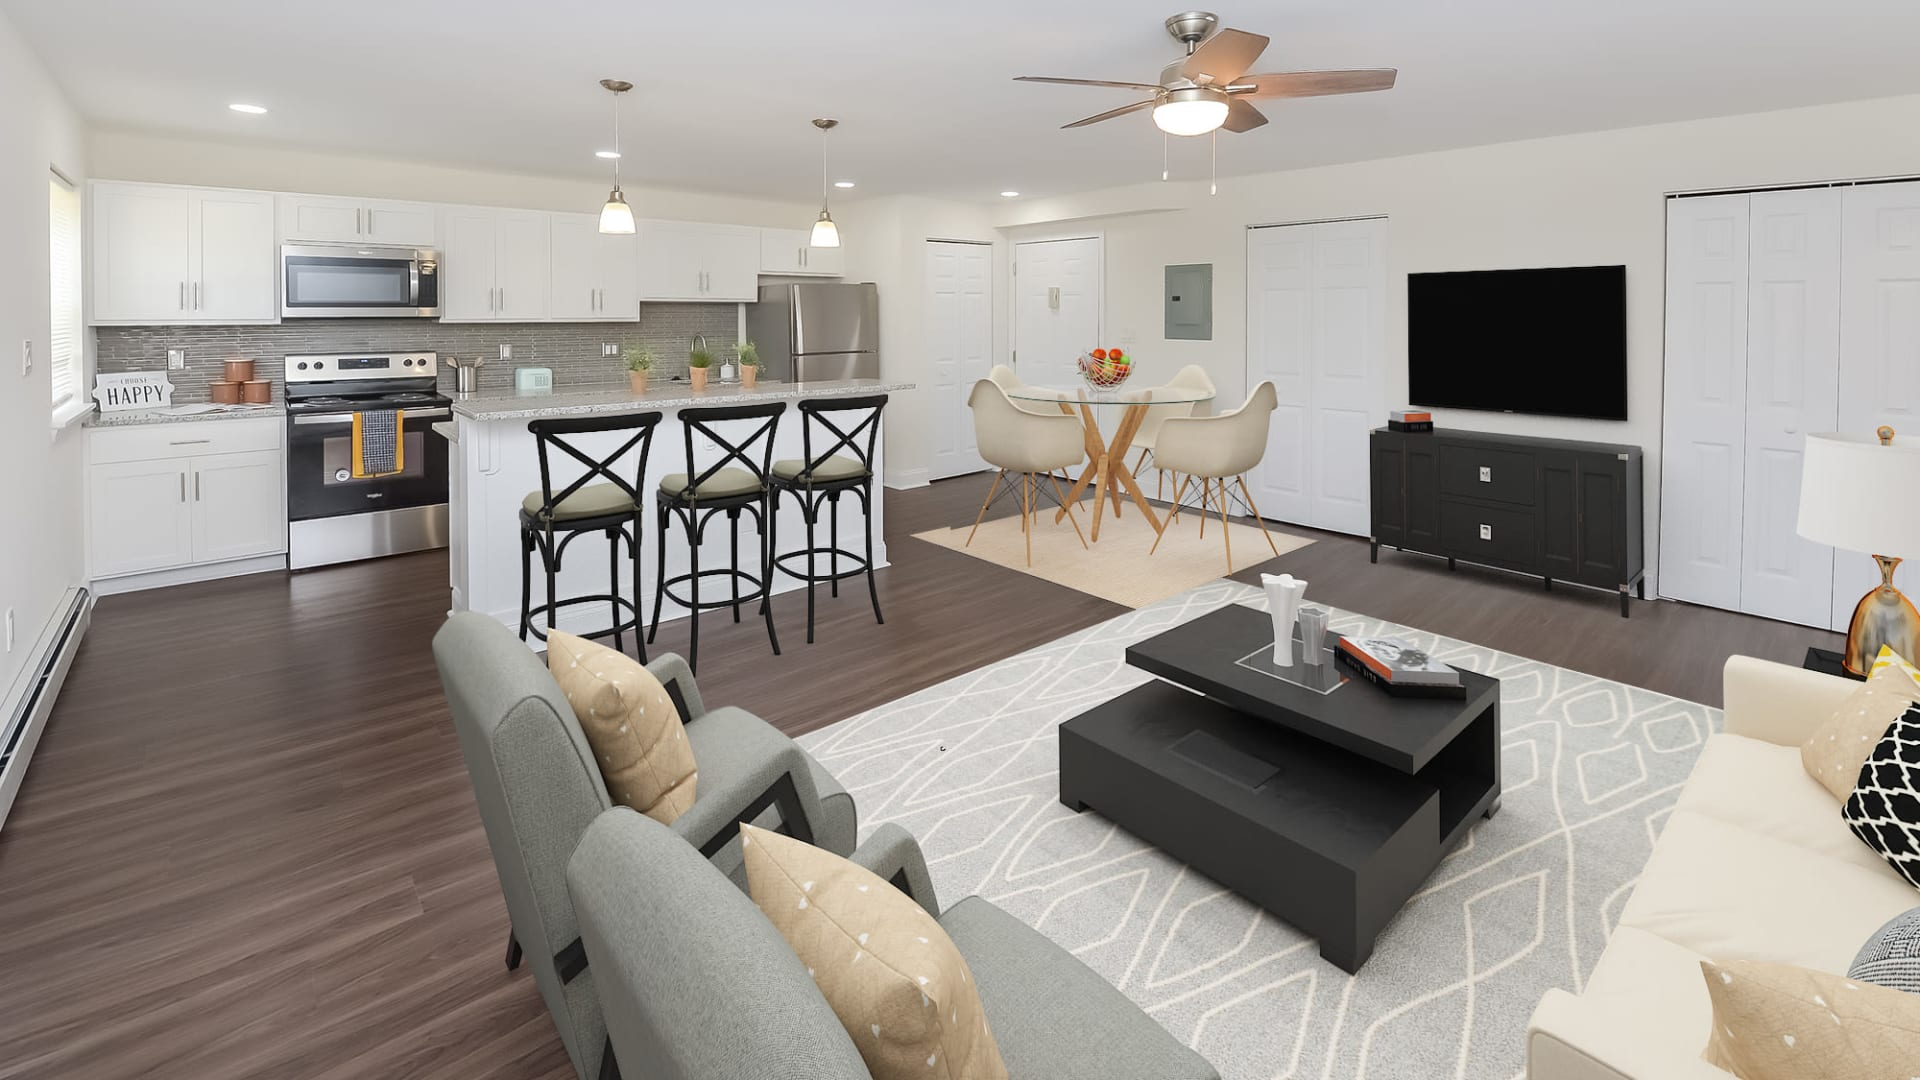 Kitchen & Living Room at Kingswood Apartments & Townhomes in King of Prussia, Pennsylvania